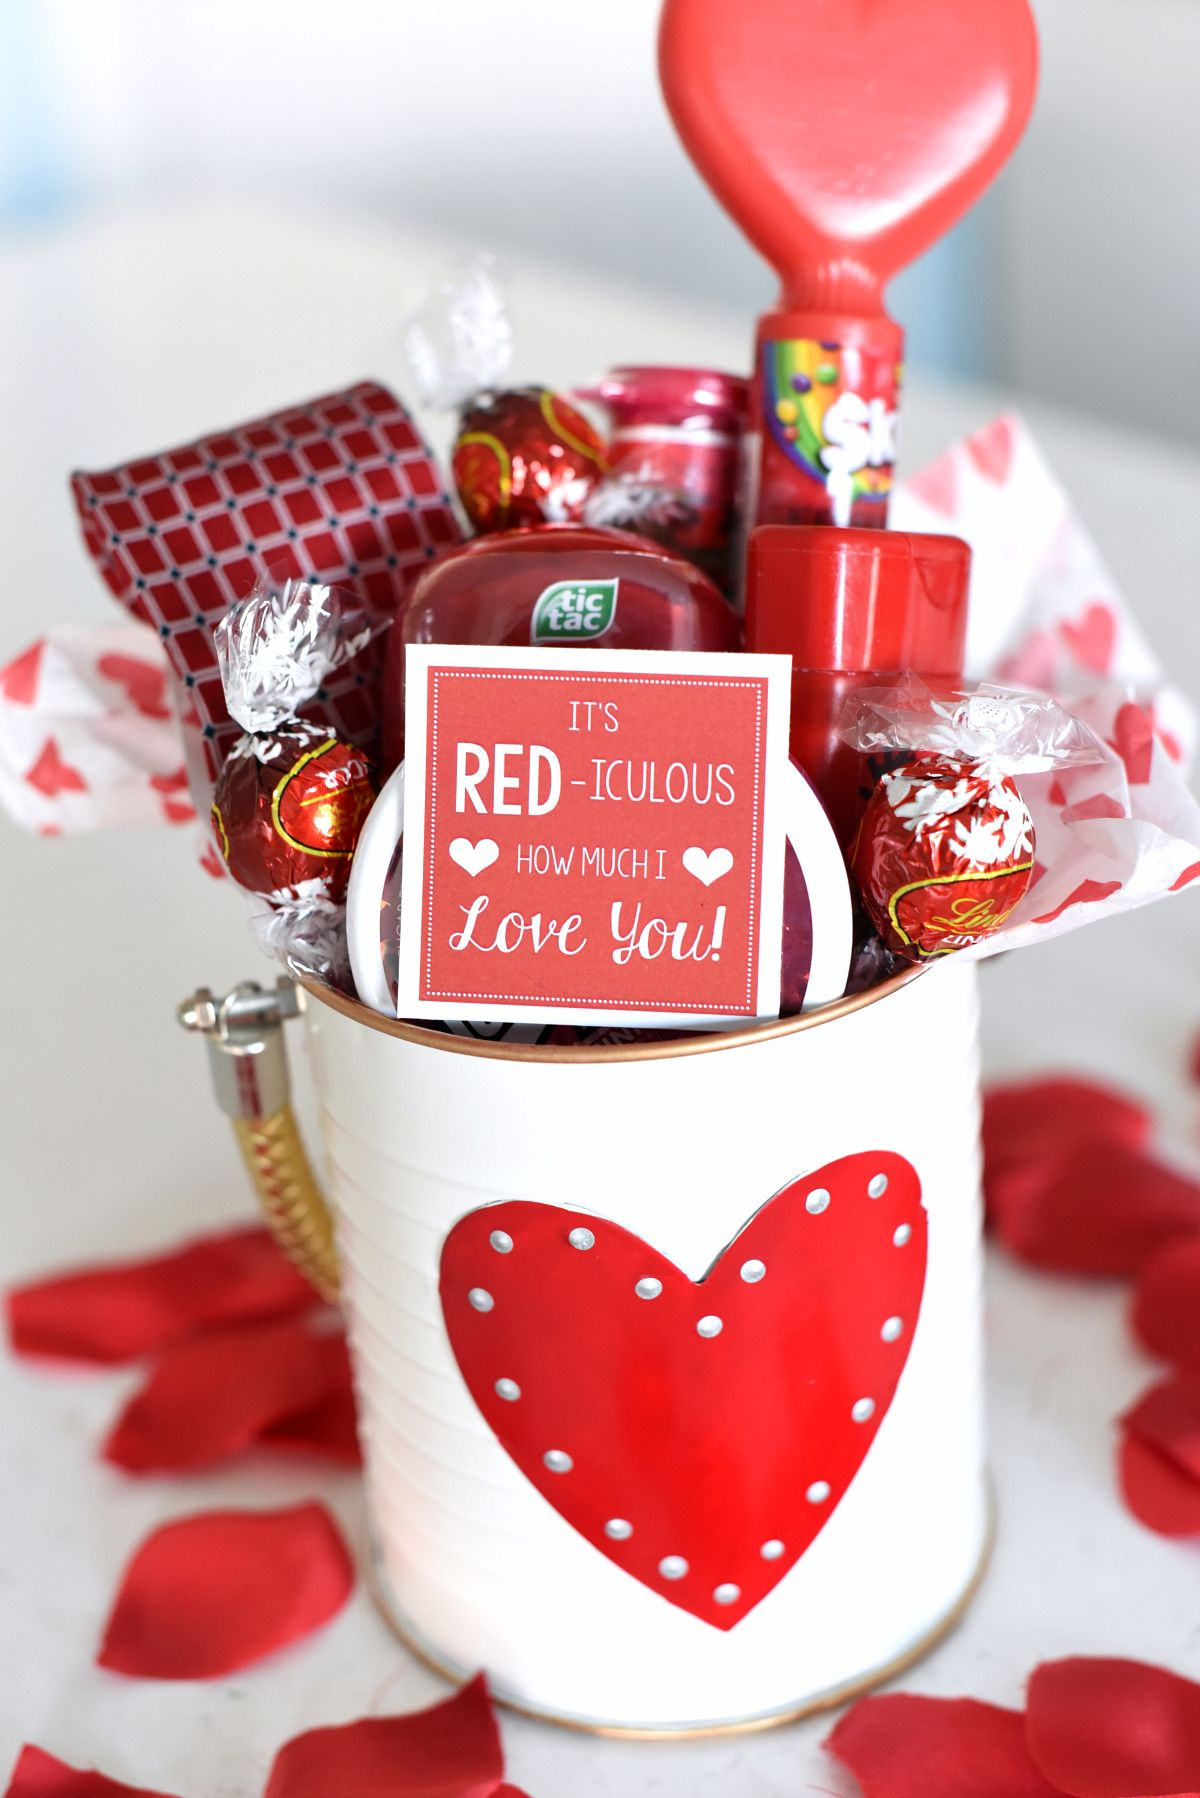 Looking For Cute Valentine S Gift Idea Your Husband Wife Boyfriend Friend Or Kids This Is Red Iculously Fun To Put Together Super And